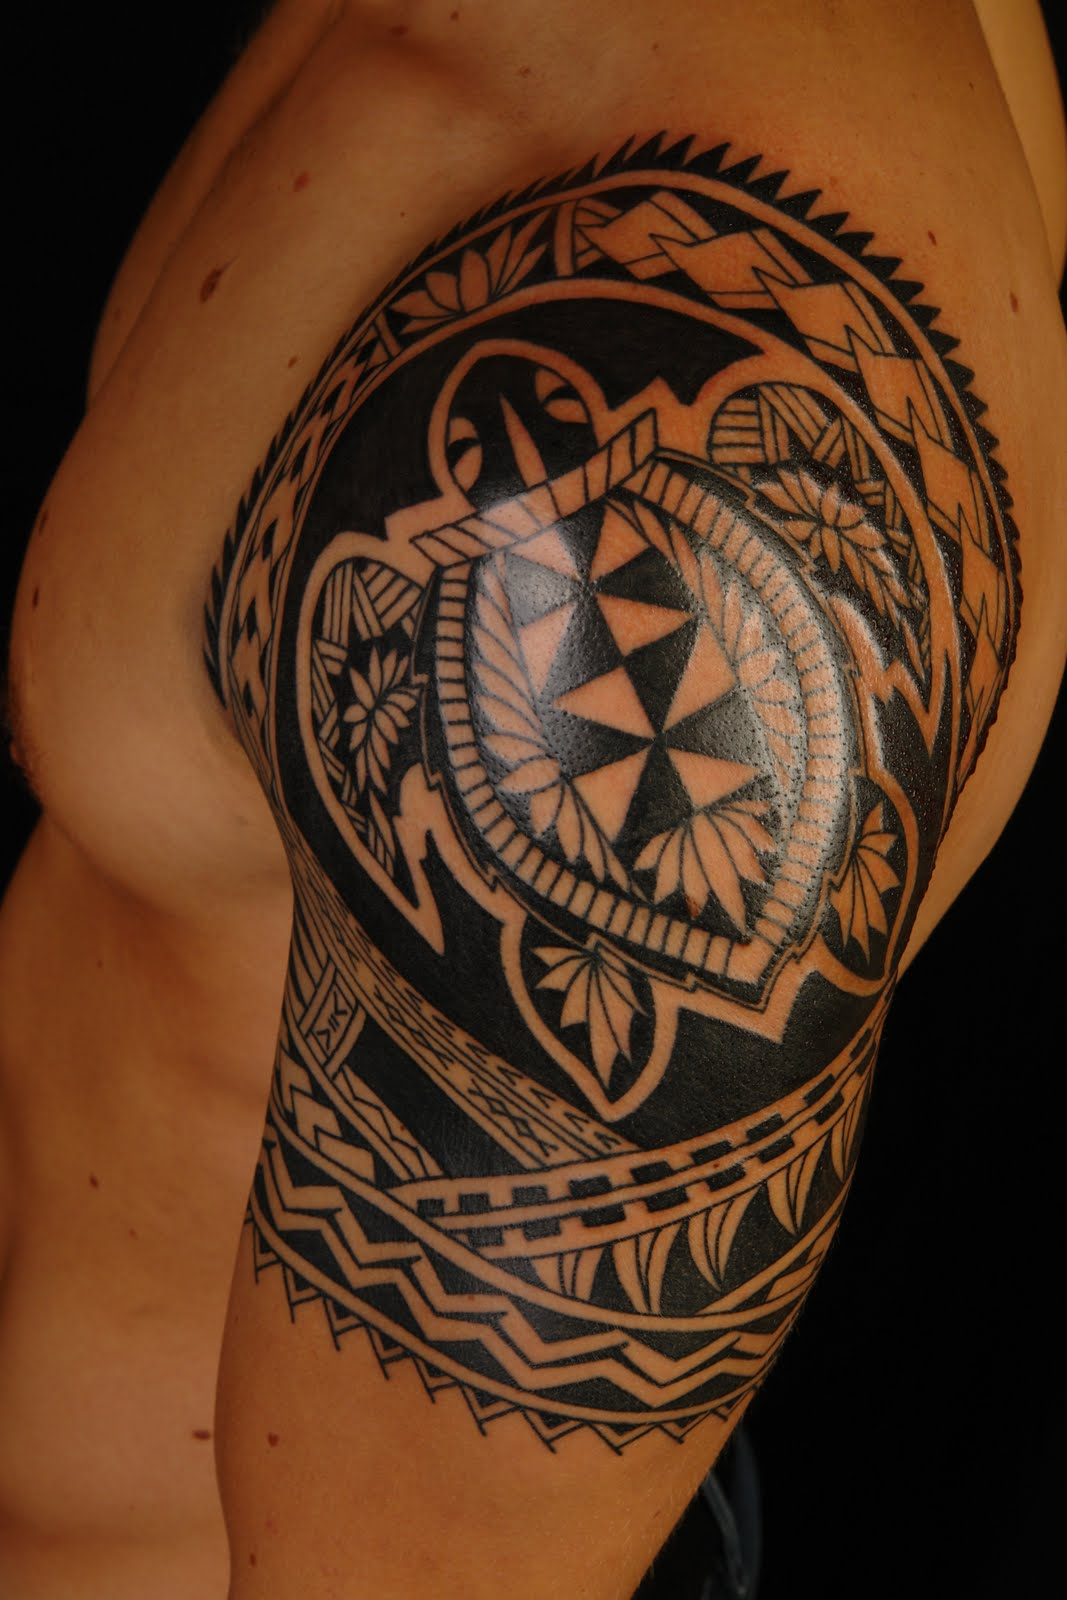 Turtle-Ocean-Maori-Tattoo-Design-Symbol-and-Meaning